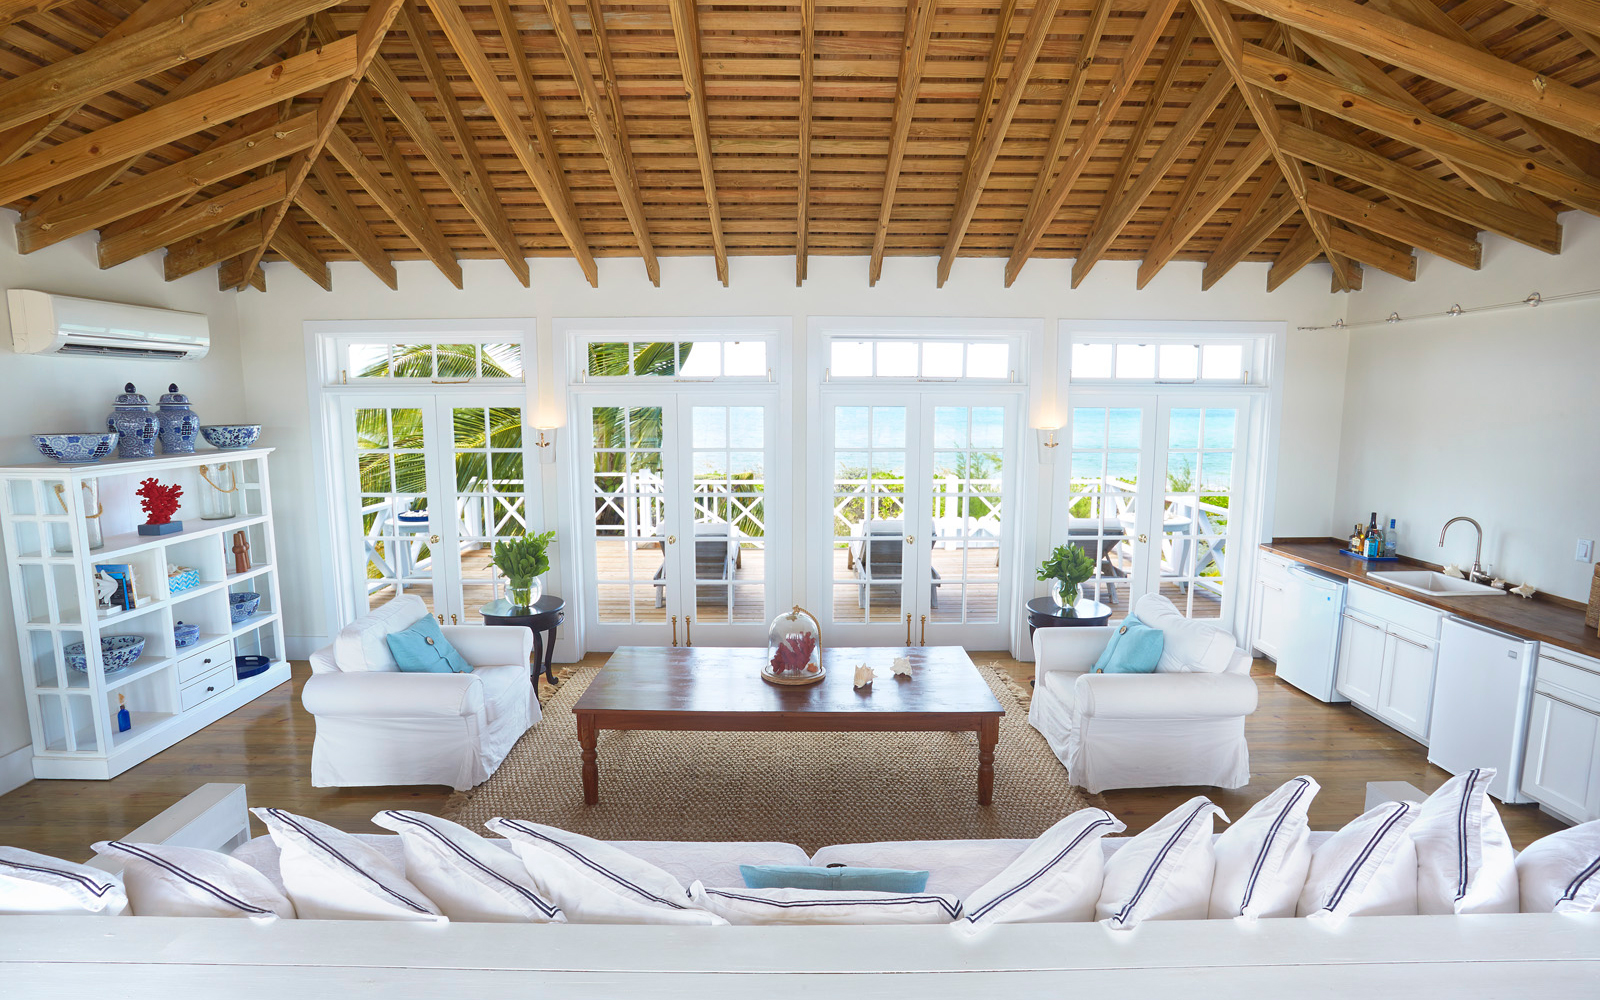 8. Kamalame Cay in the Bahamas